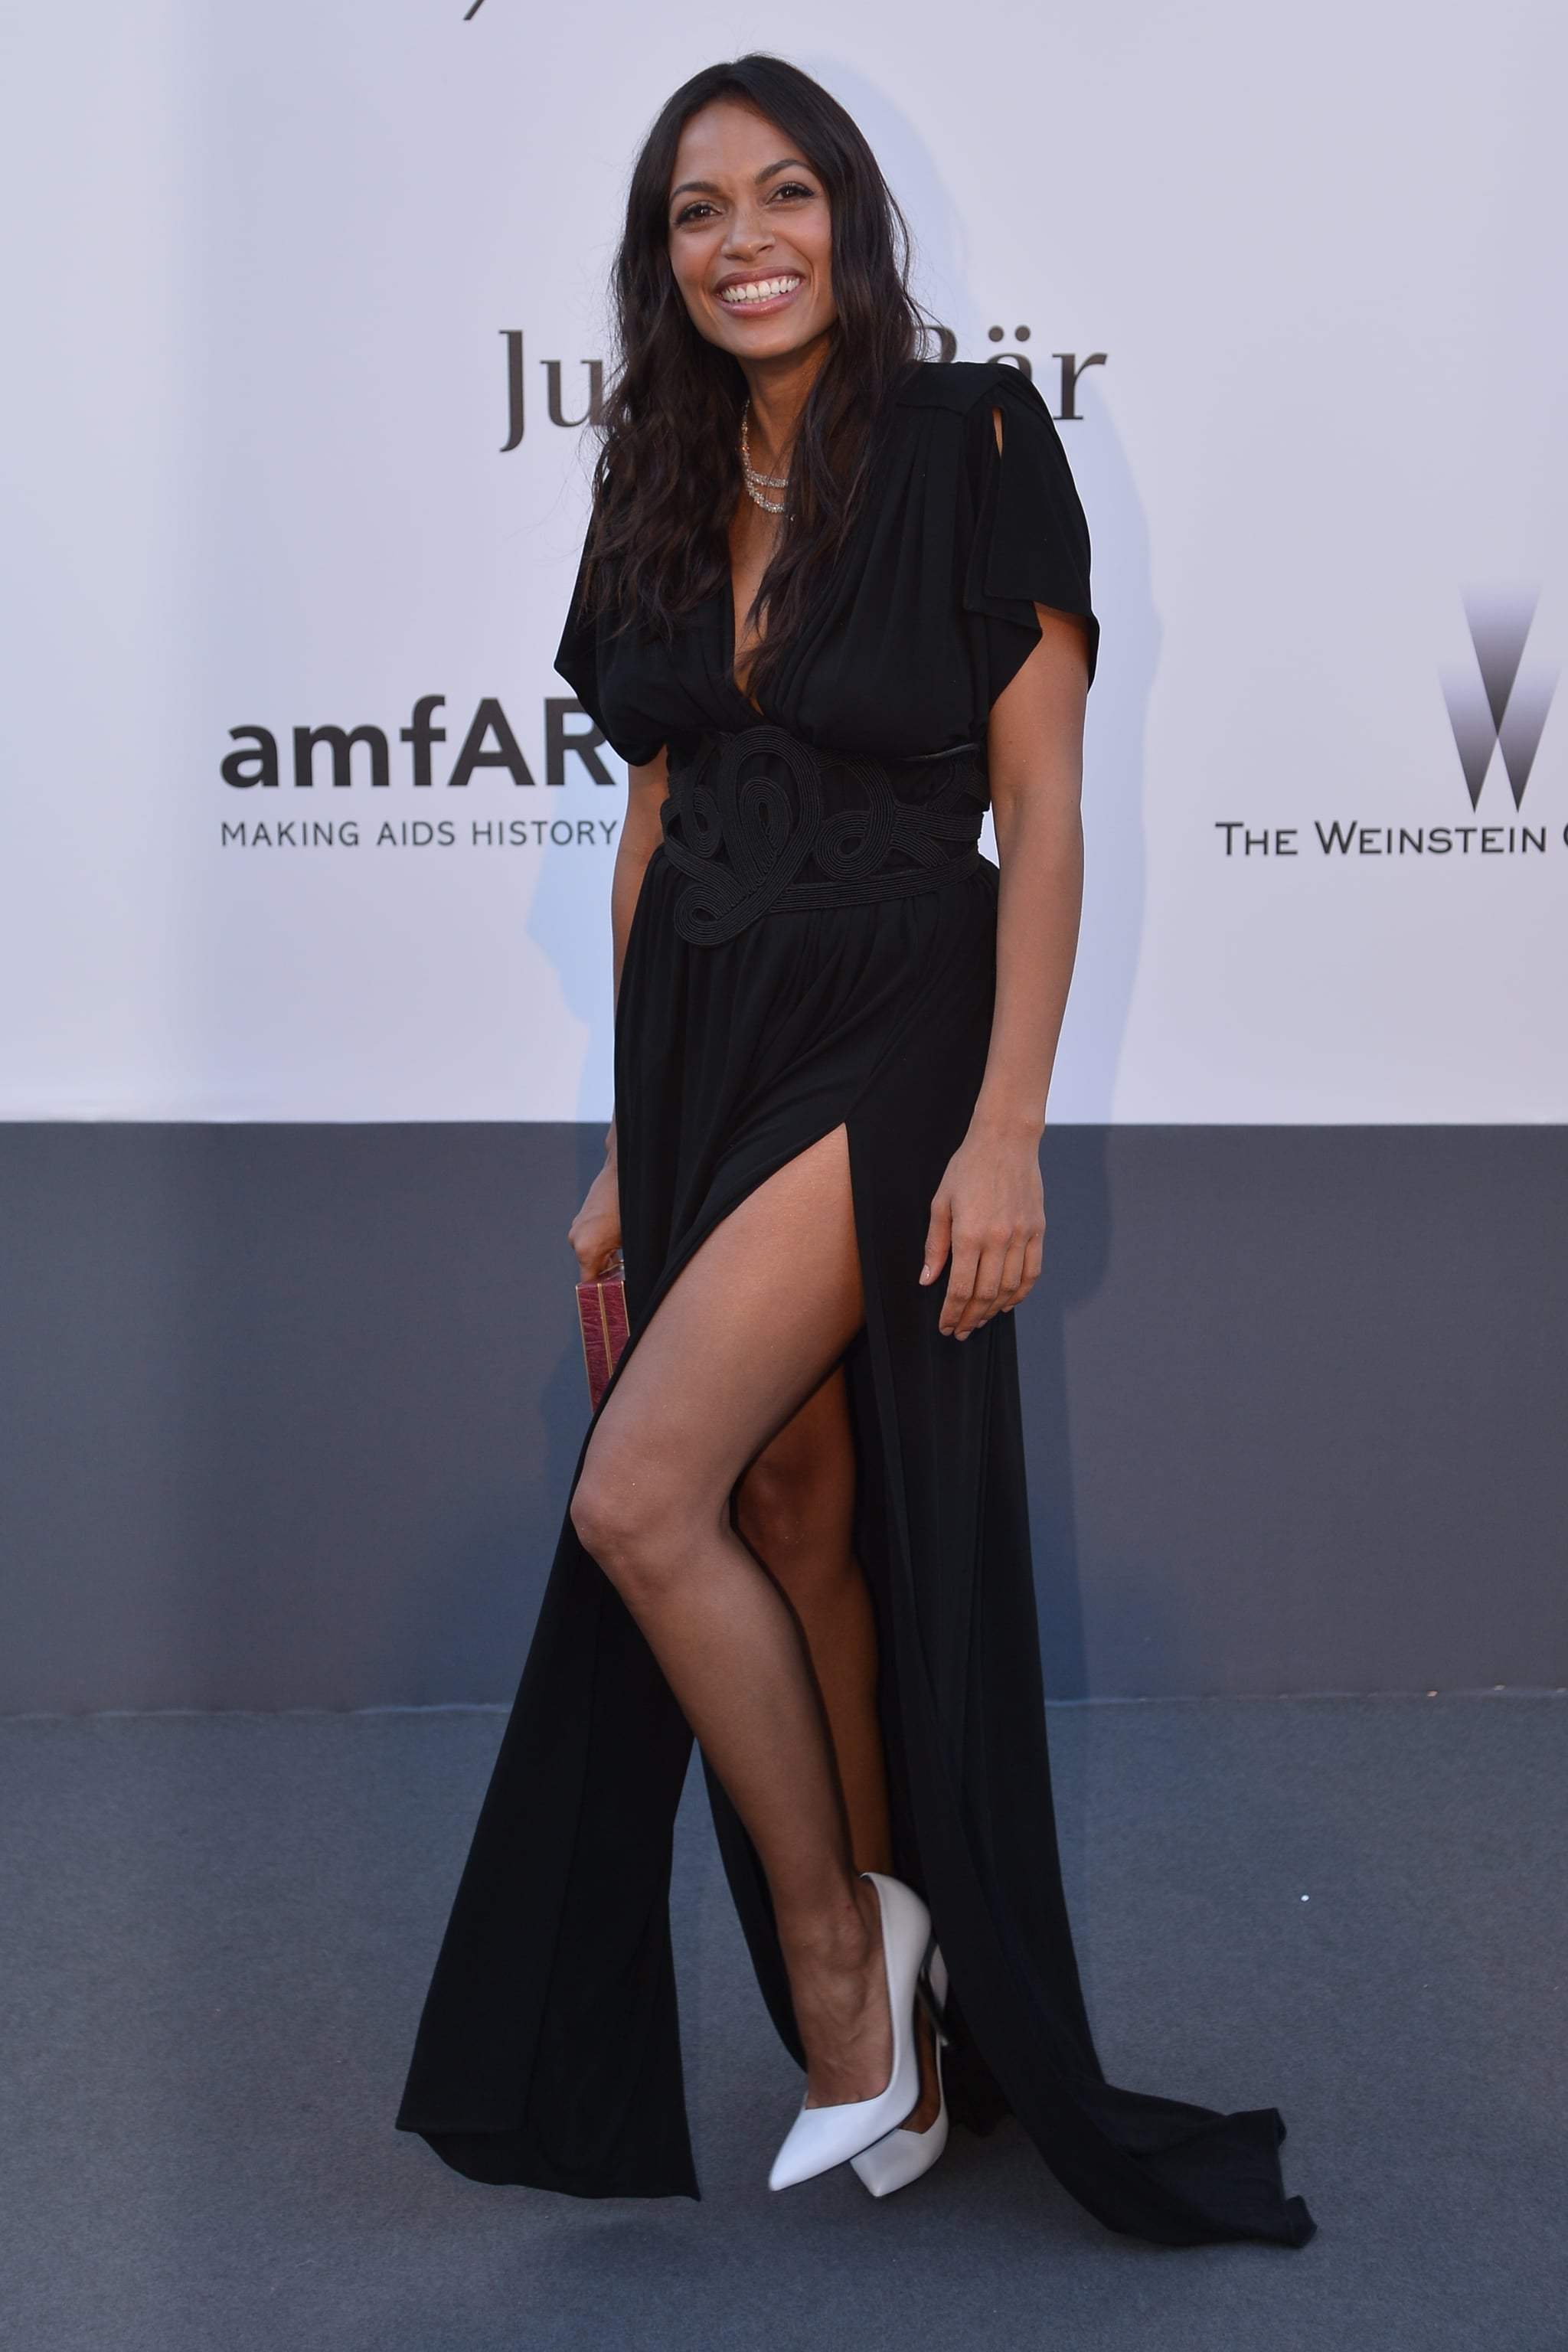 Rosario Dawson's Vionnet gown may have been covered up on top, but the bottom half told a sexier story with a leg-flaunting slit.